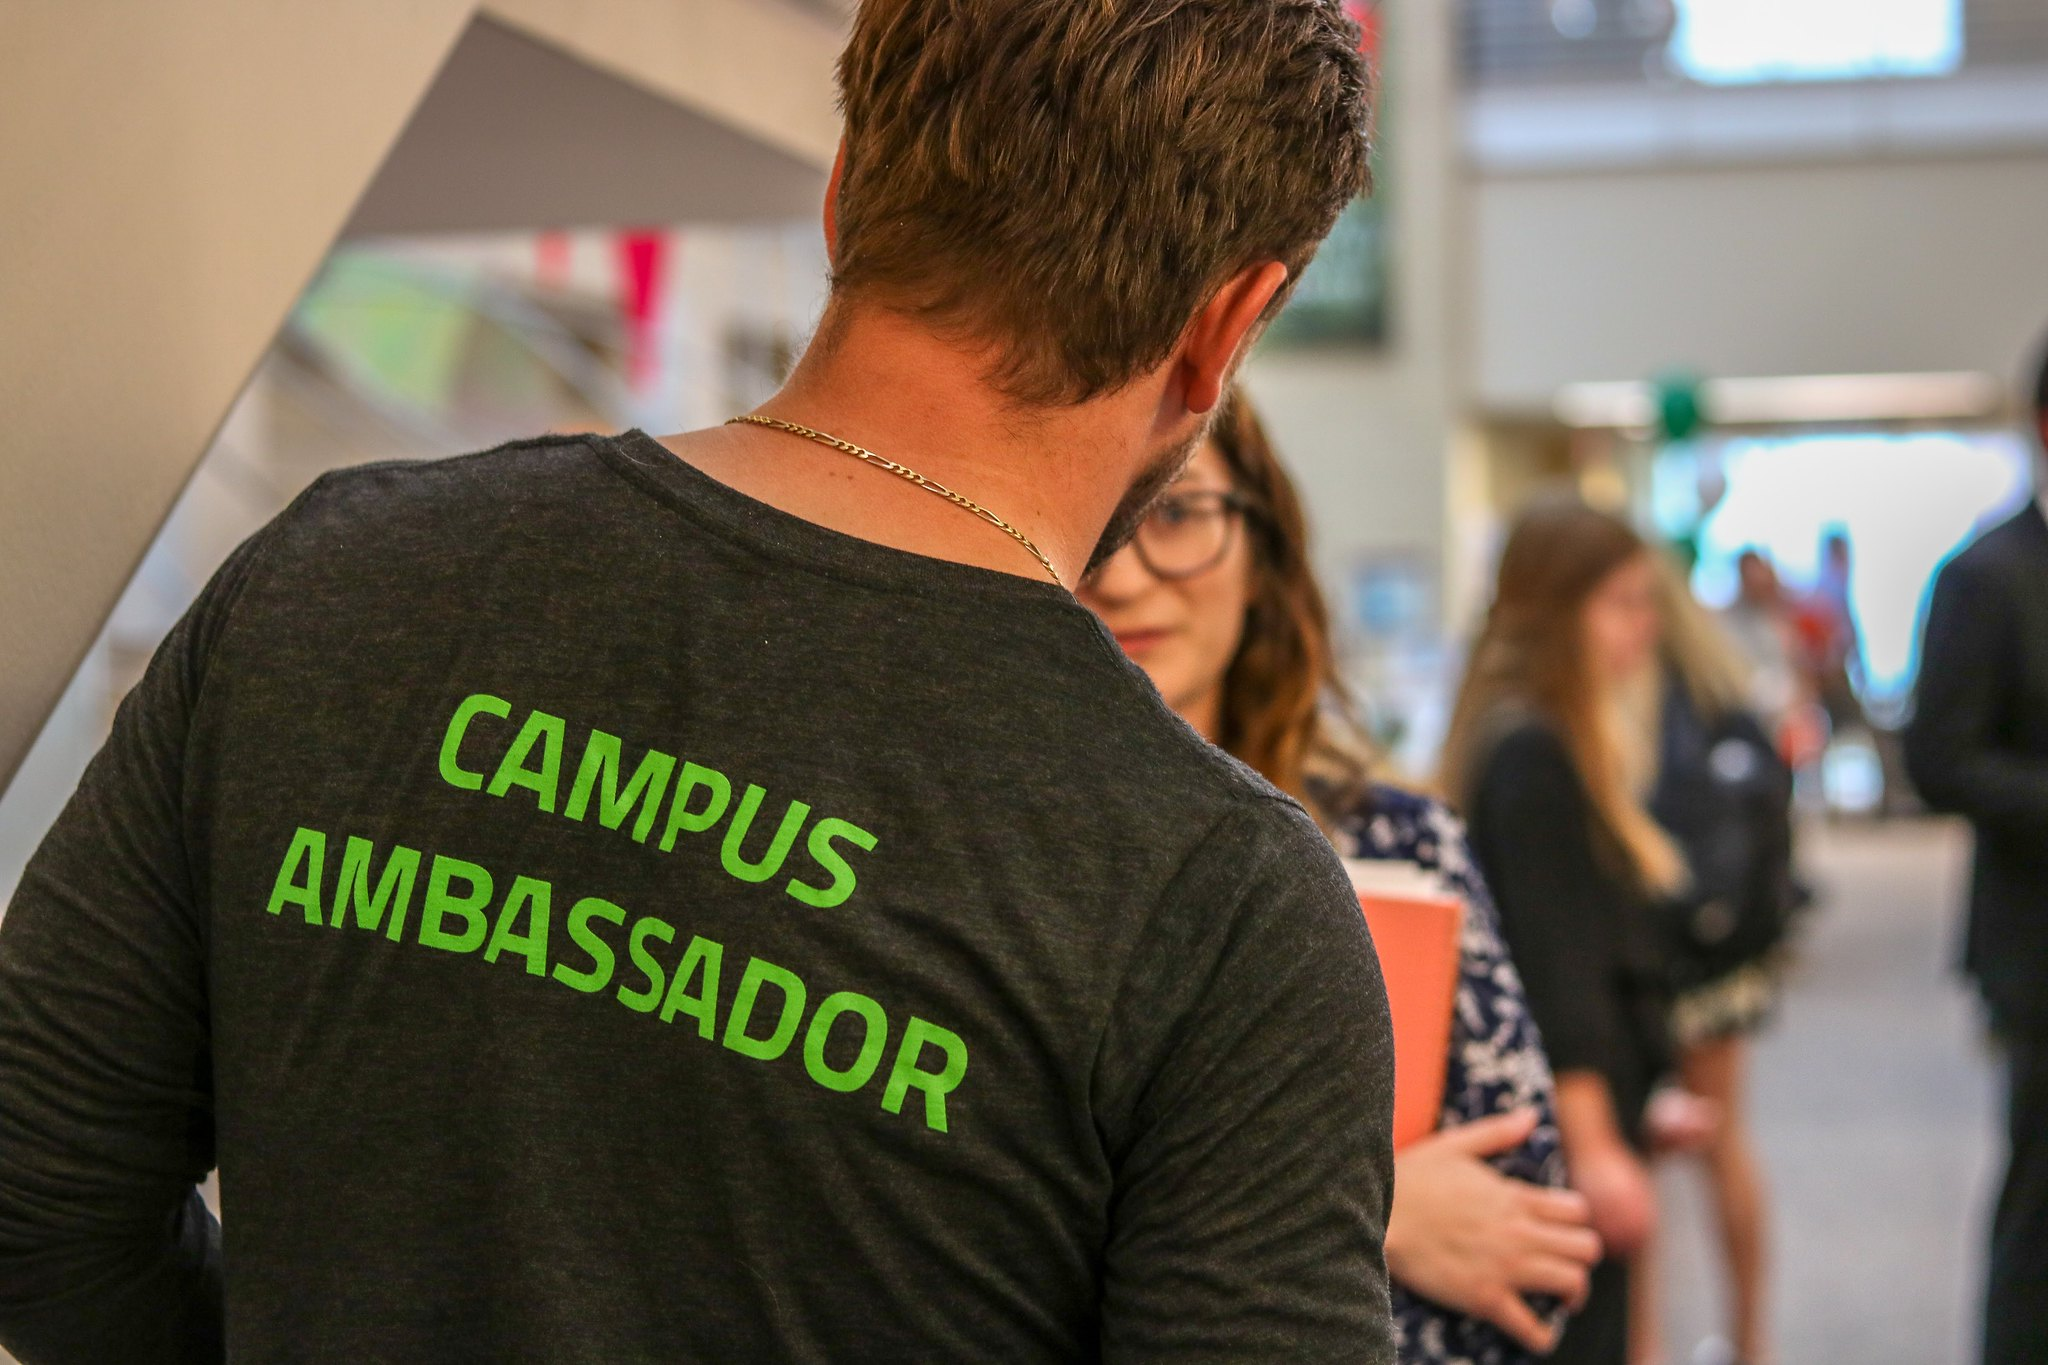 Campus Ambassador from Internship Expo 2019